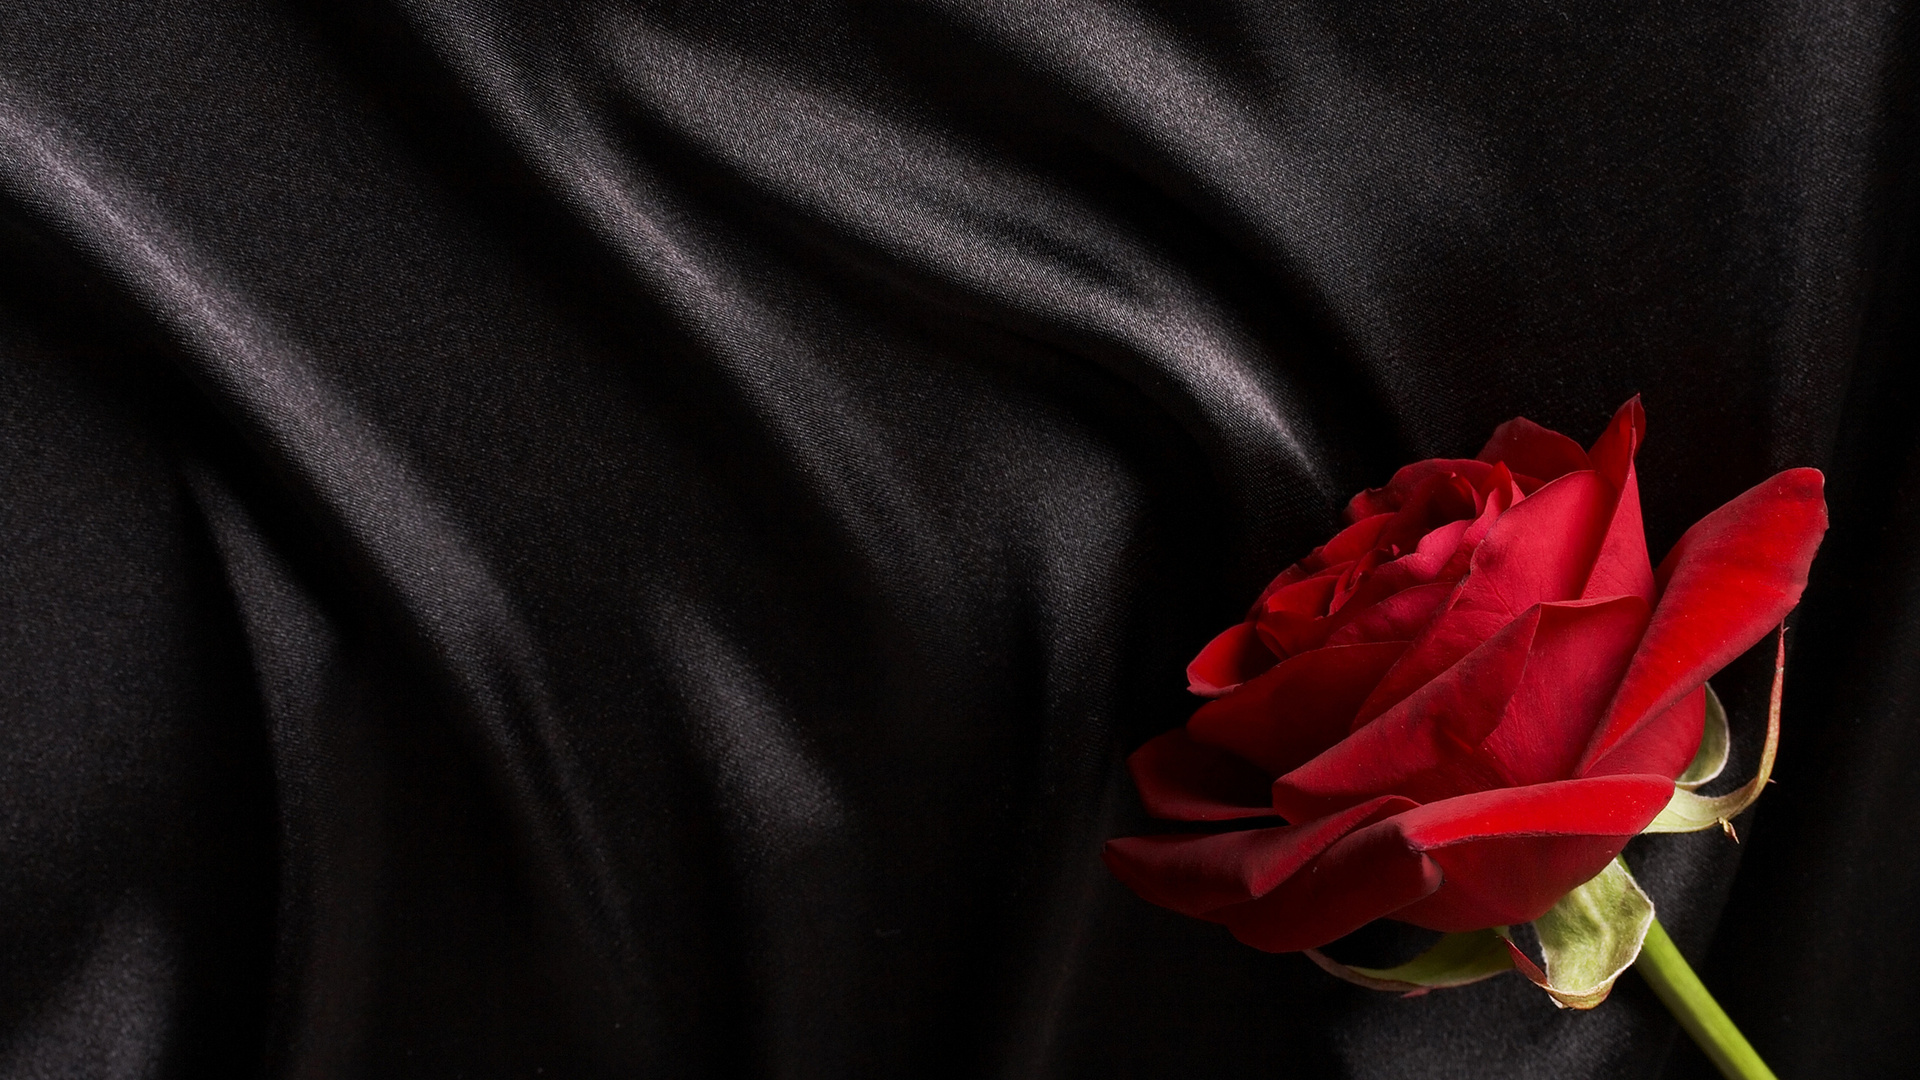 Black And Red Rose Wallpaper Download Black Silk Wallpaper Black And Red Satin 1920x1080 Wallpaper Teahub Io